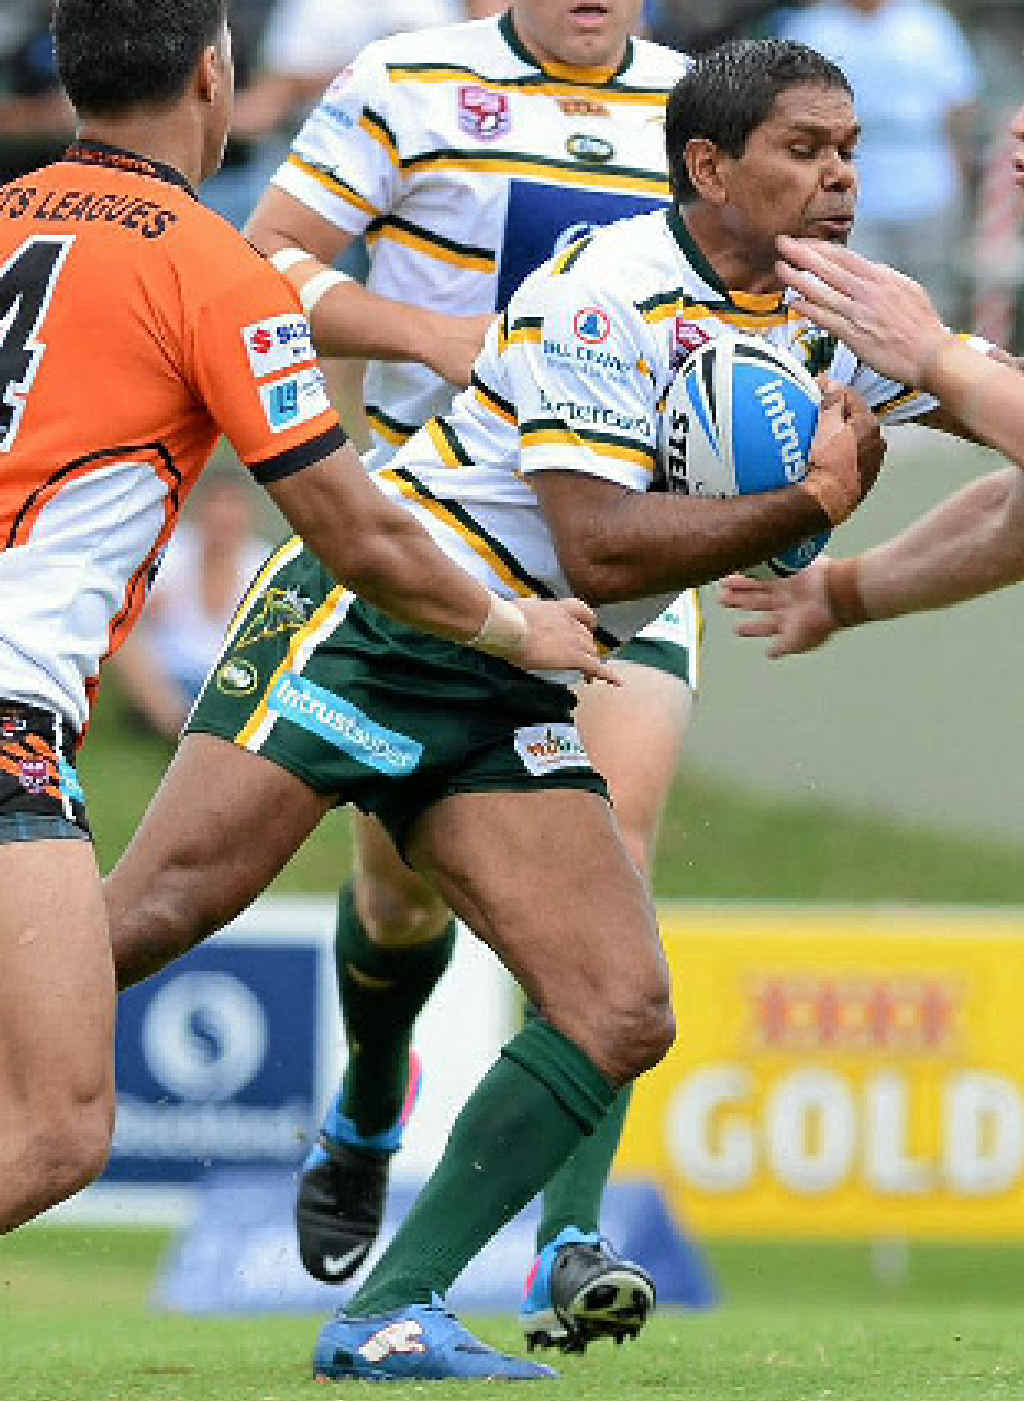 SIMPLE FORMULA: Brendon Marshall in action for the Ipswich Jets.